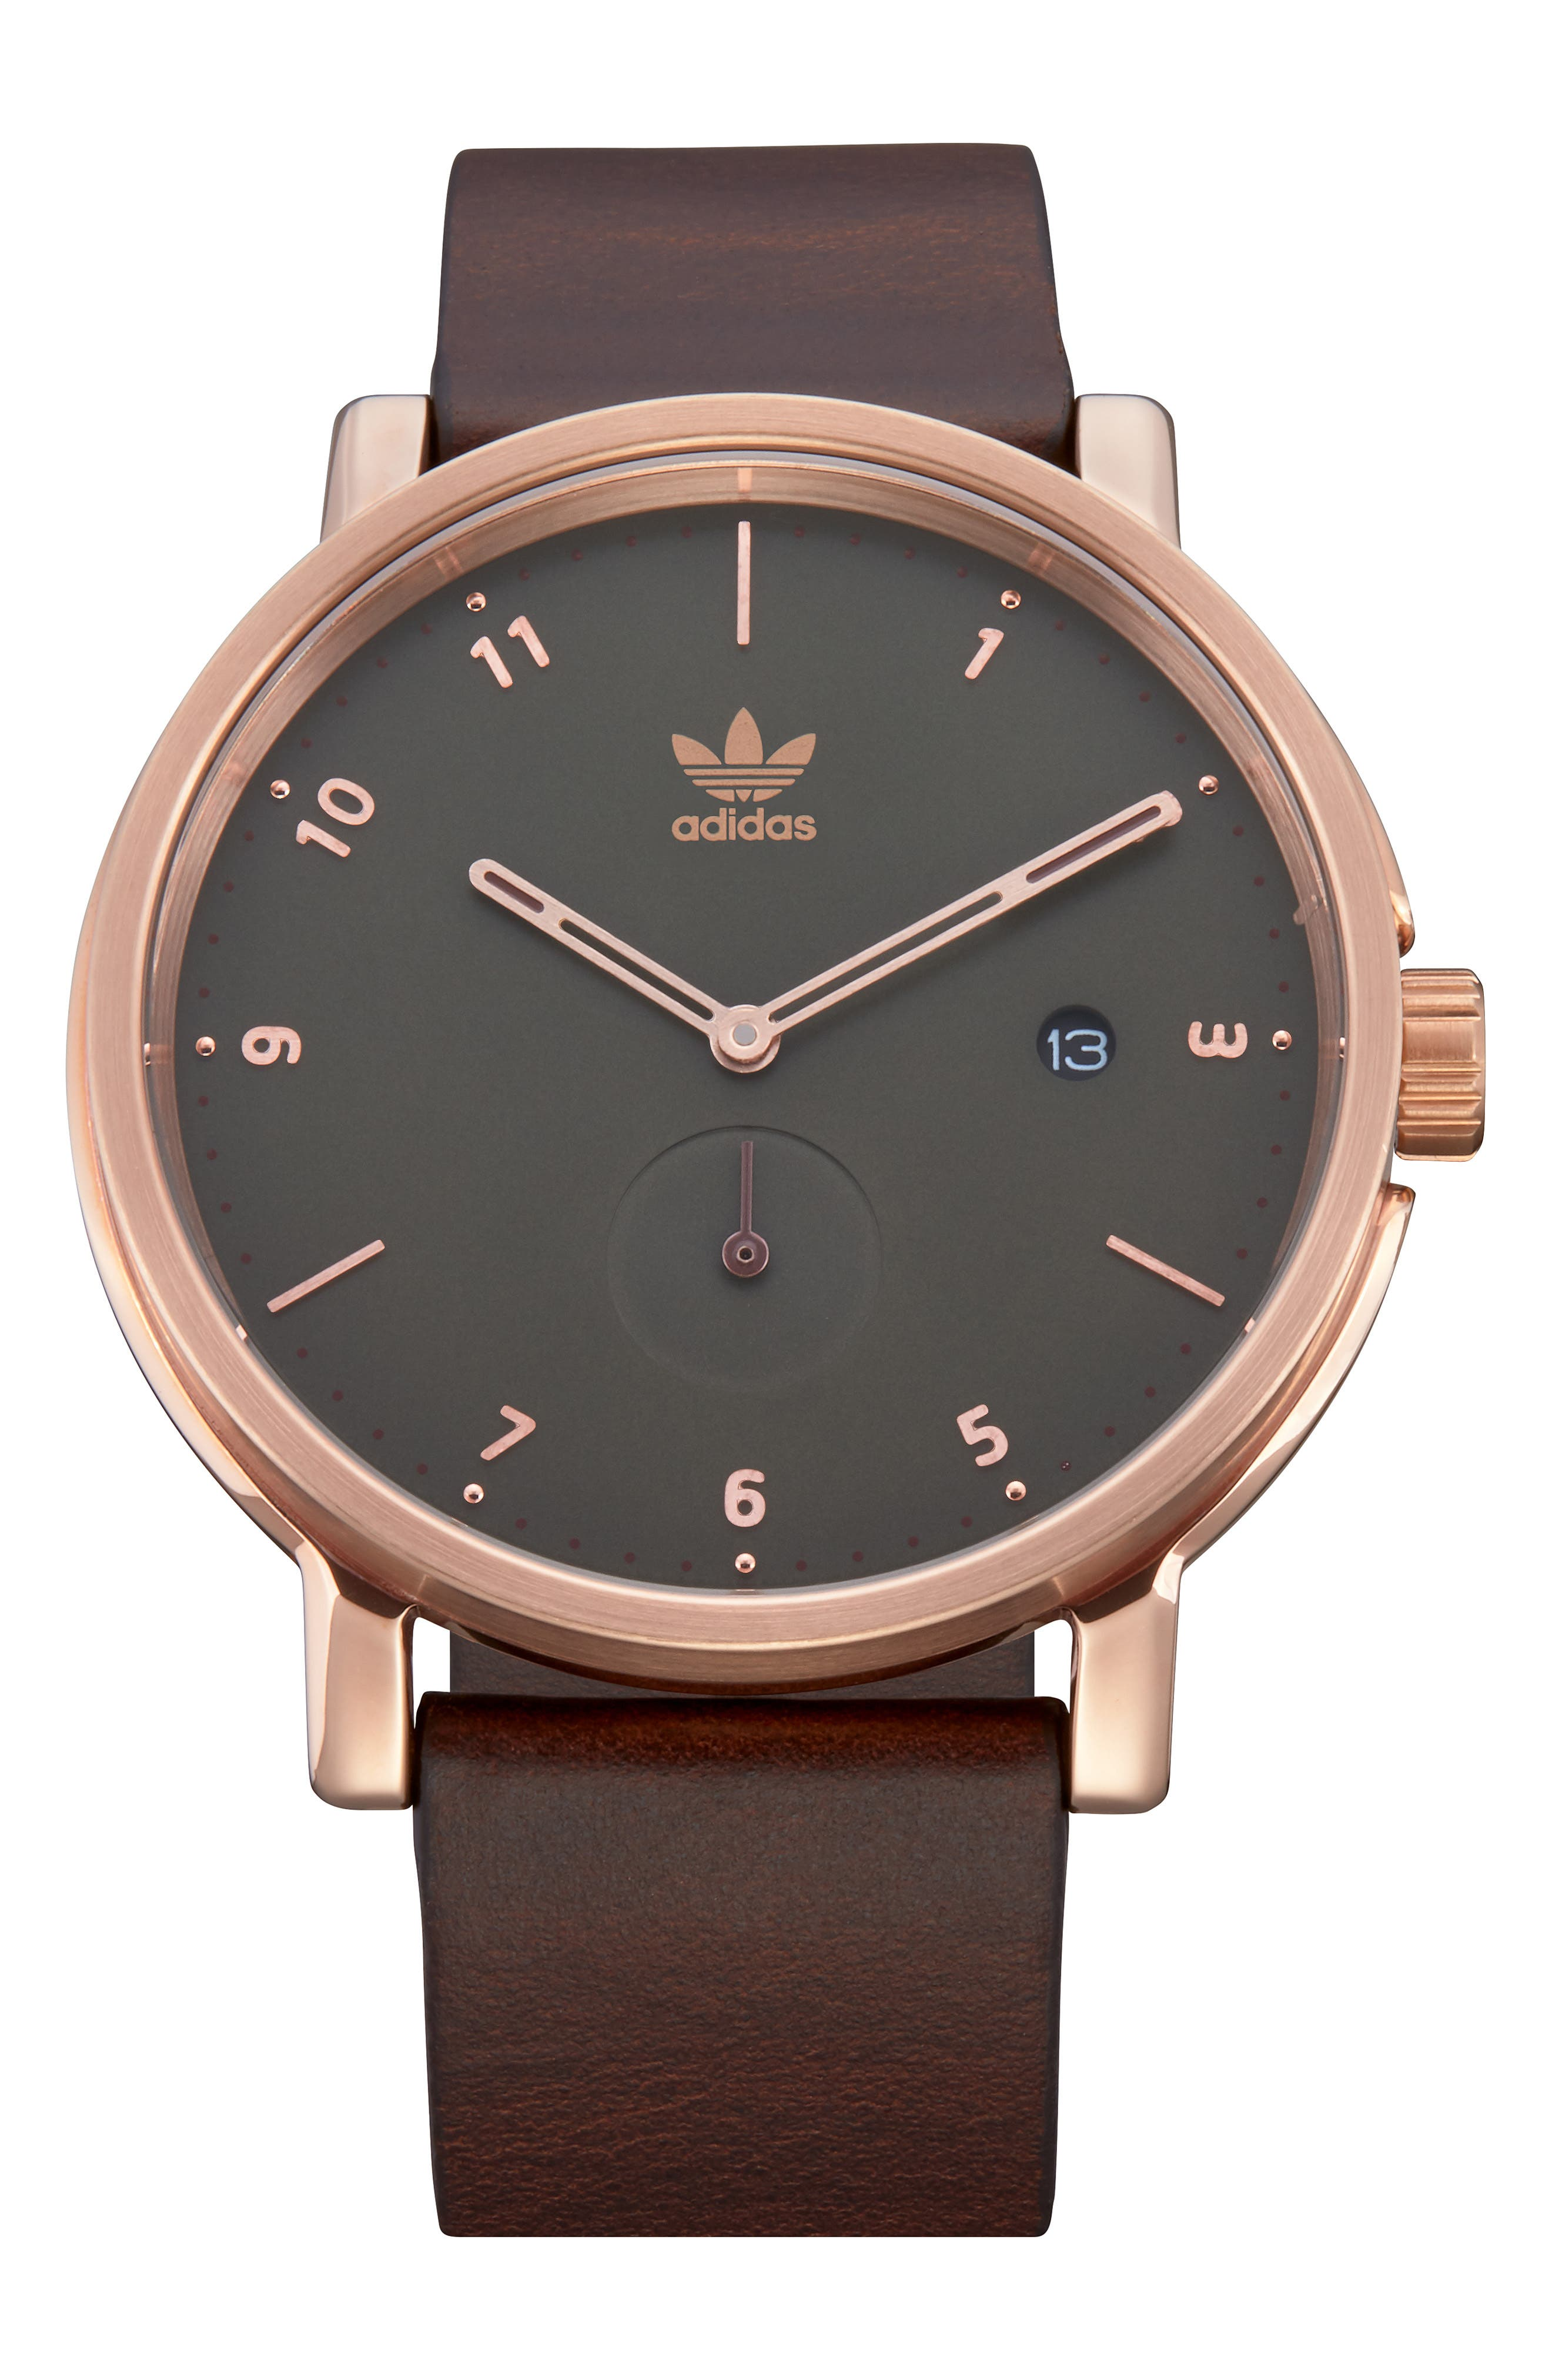 ADIDAS, District Leather Strap Watch, 40mm, Main thumbnail 1, color, BROWN/ OLIVE/ ROSE GOLD